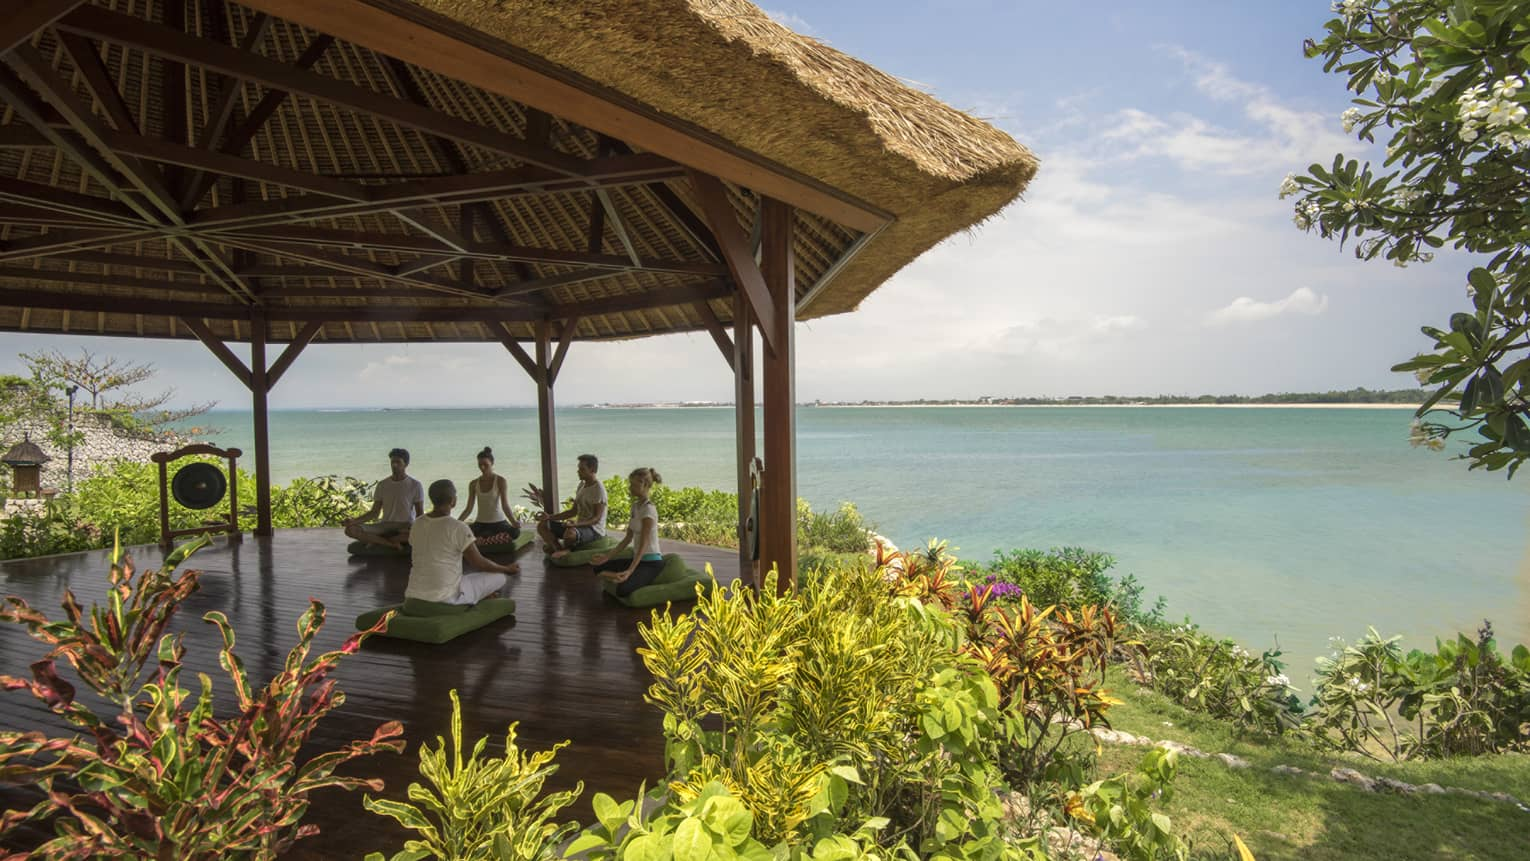 Five people sit cross-legged meditating on green cushions under thatched-roof gazebo by ocean